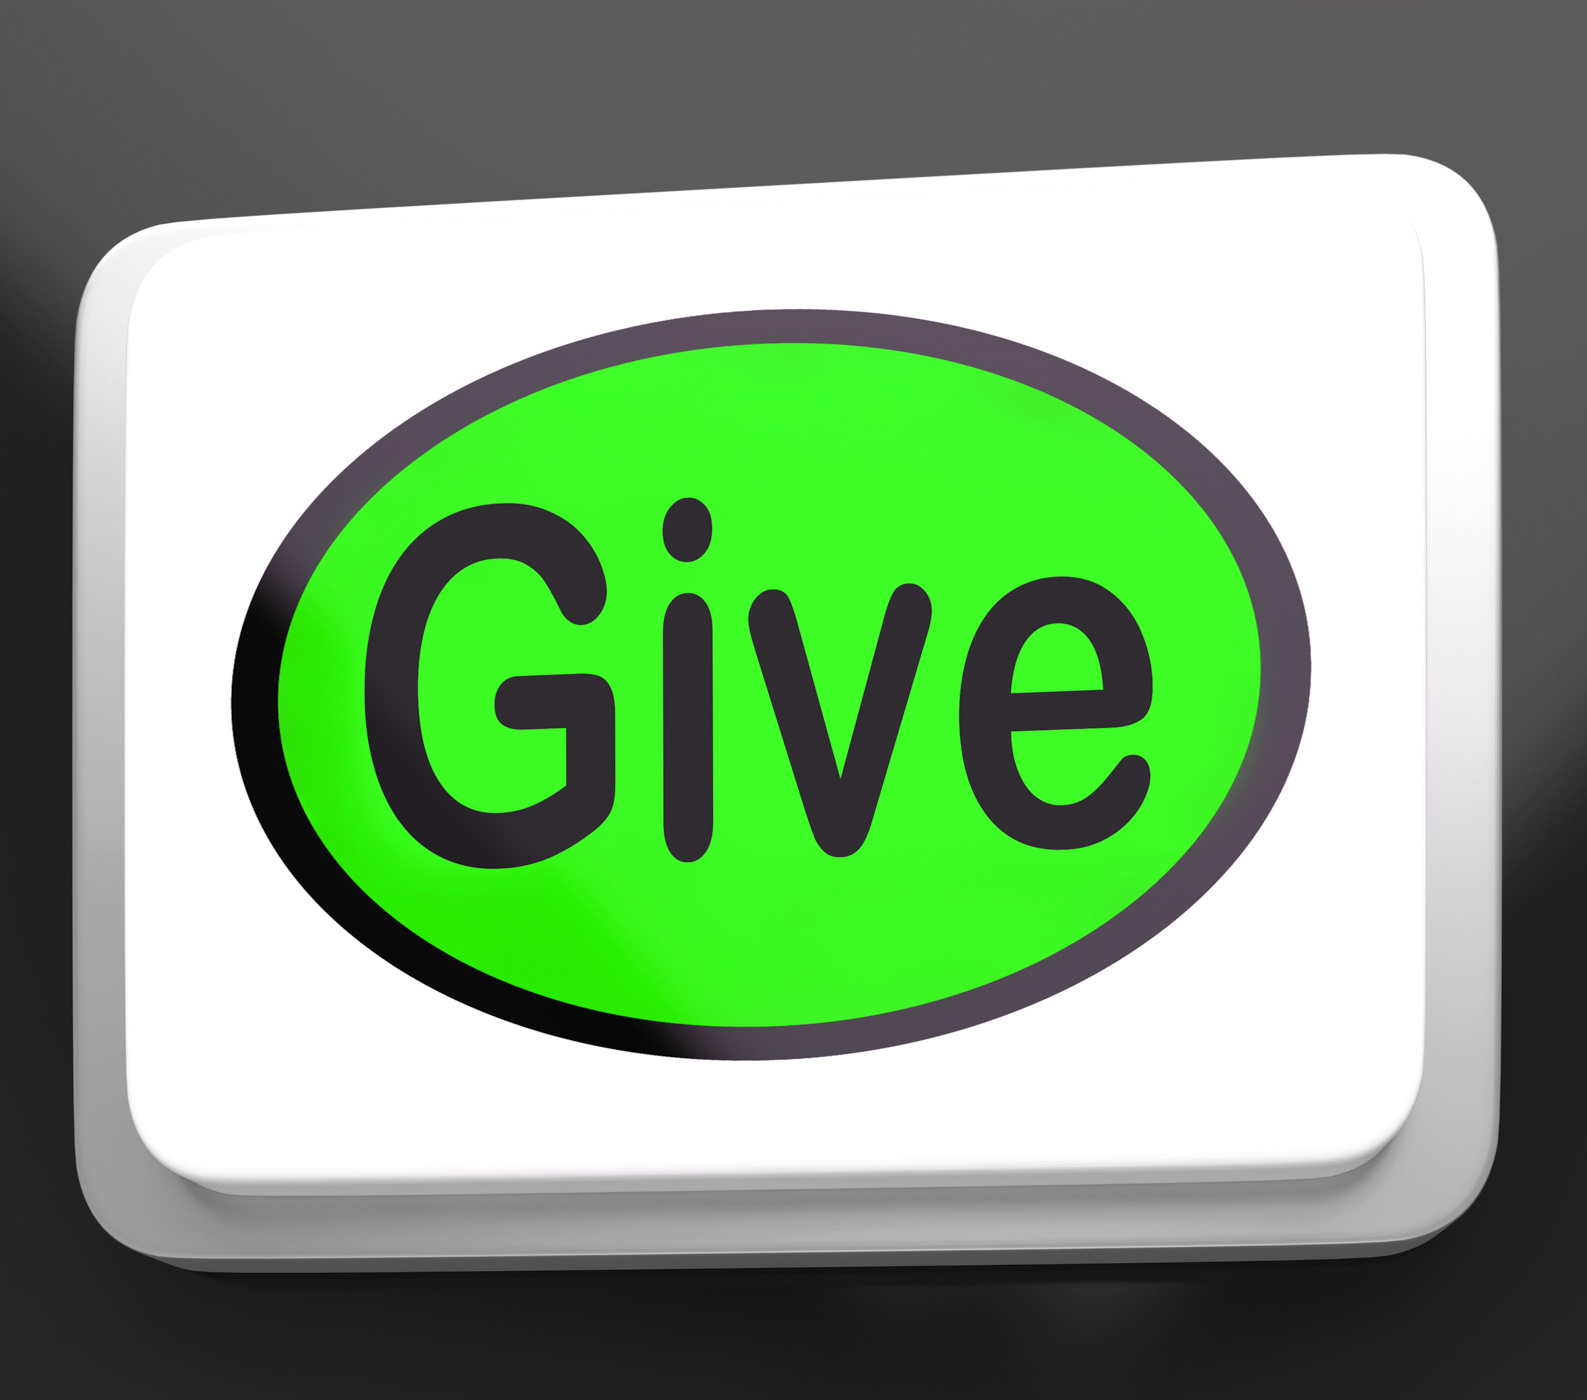 Give button means bestowed allot or grant photo